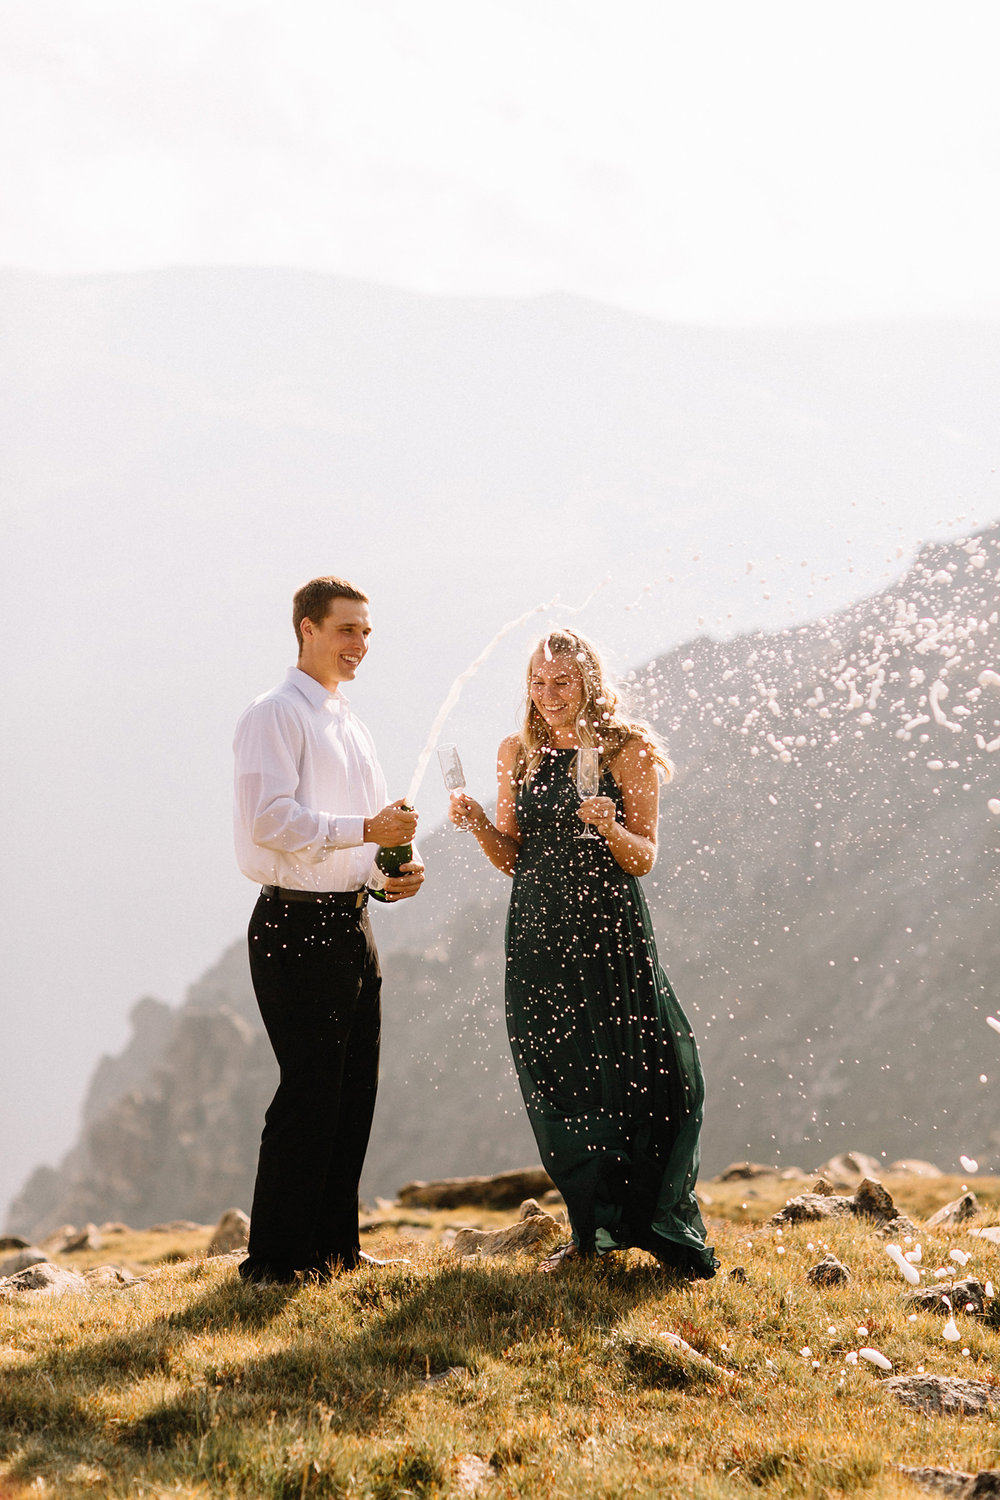 Rocky Mountain Engagement National Park Engaged Photos Wedding Elopement Portrait Mountains Trail Ridge Rd Peak Alpine Dress Lulus Rules Permit Photo Adventure Love Couples Destination Liz Osban photography Cheyenne Wyoming1.jpg